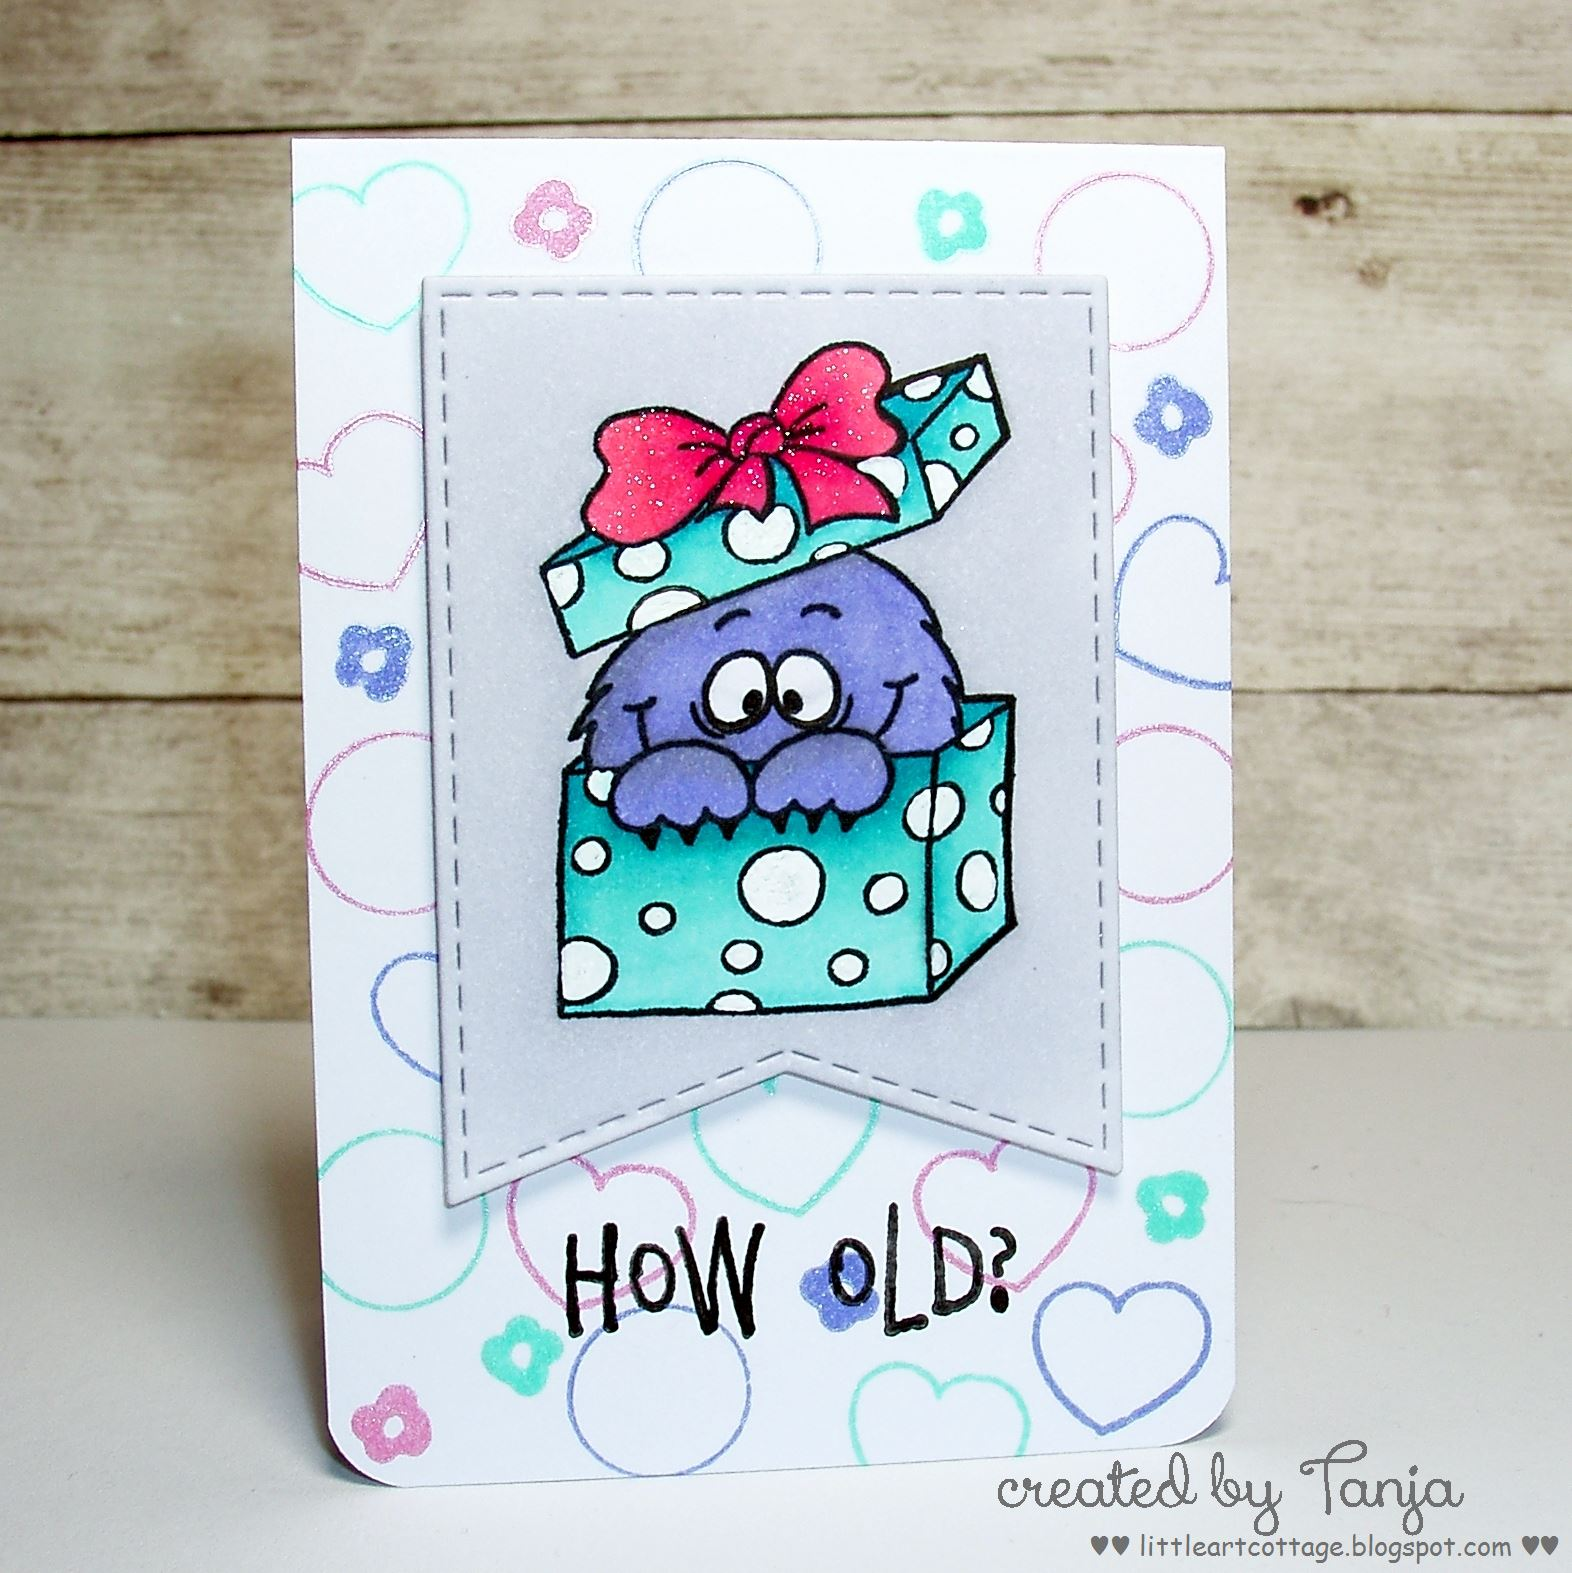 Cut Out A Stitched Banner And Stamp The Monster In Box From Gerda Steiner Designs Party Set With Memento Tuxedo Black Color